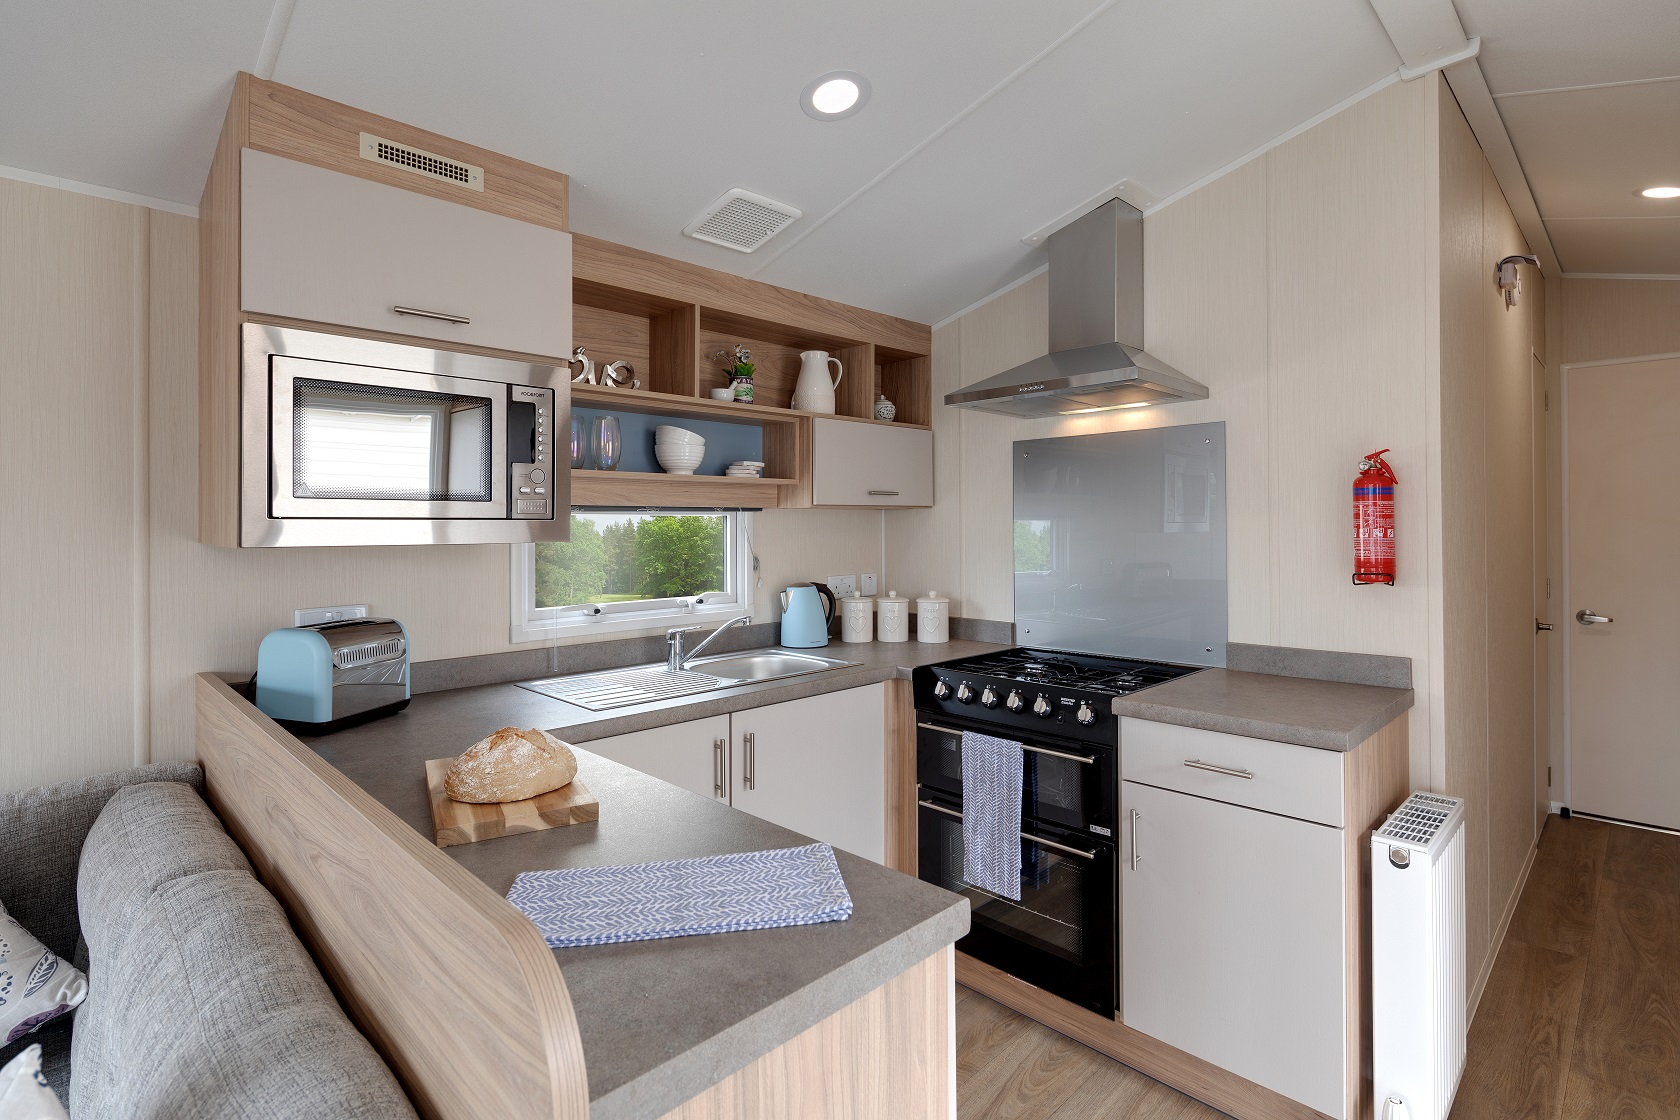 Willerby Linwood: New Static Caravans and Holiday Homes for Sale, Available to Order Large Image 3